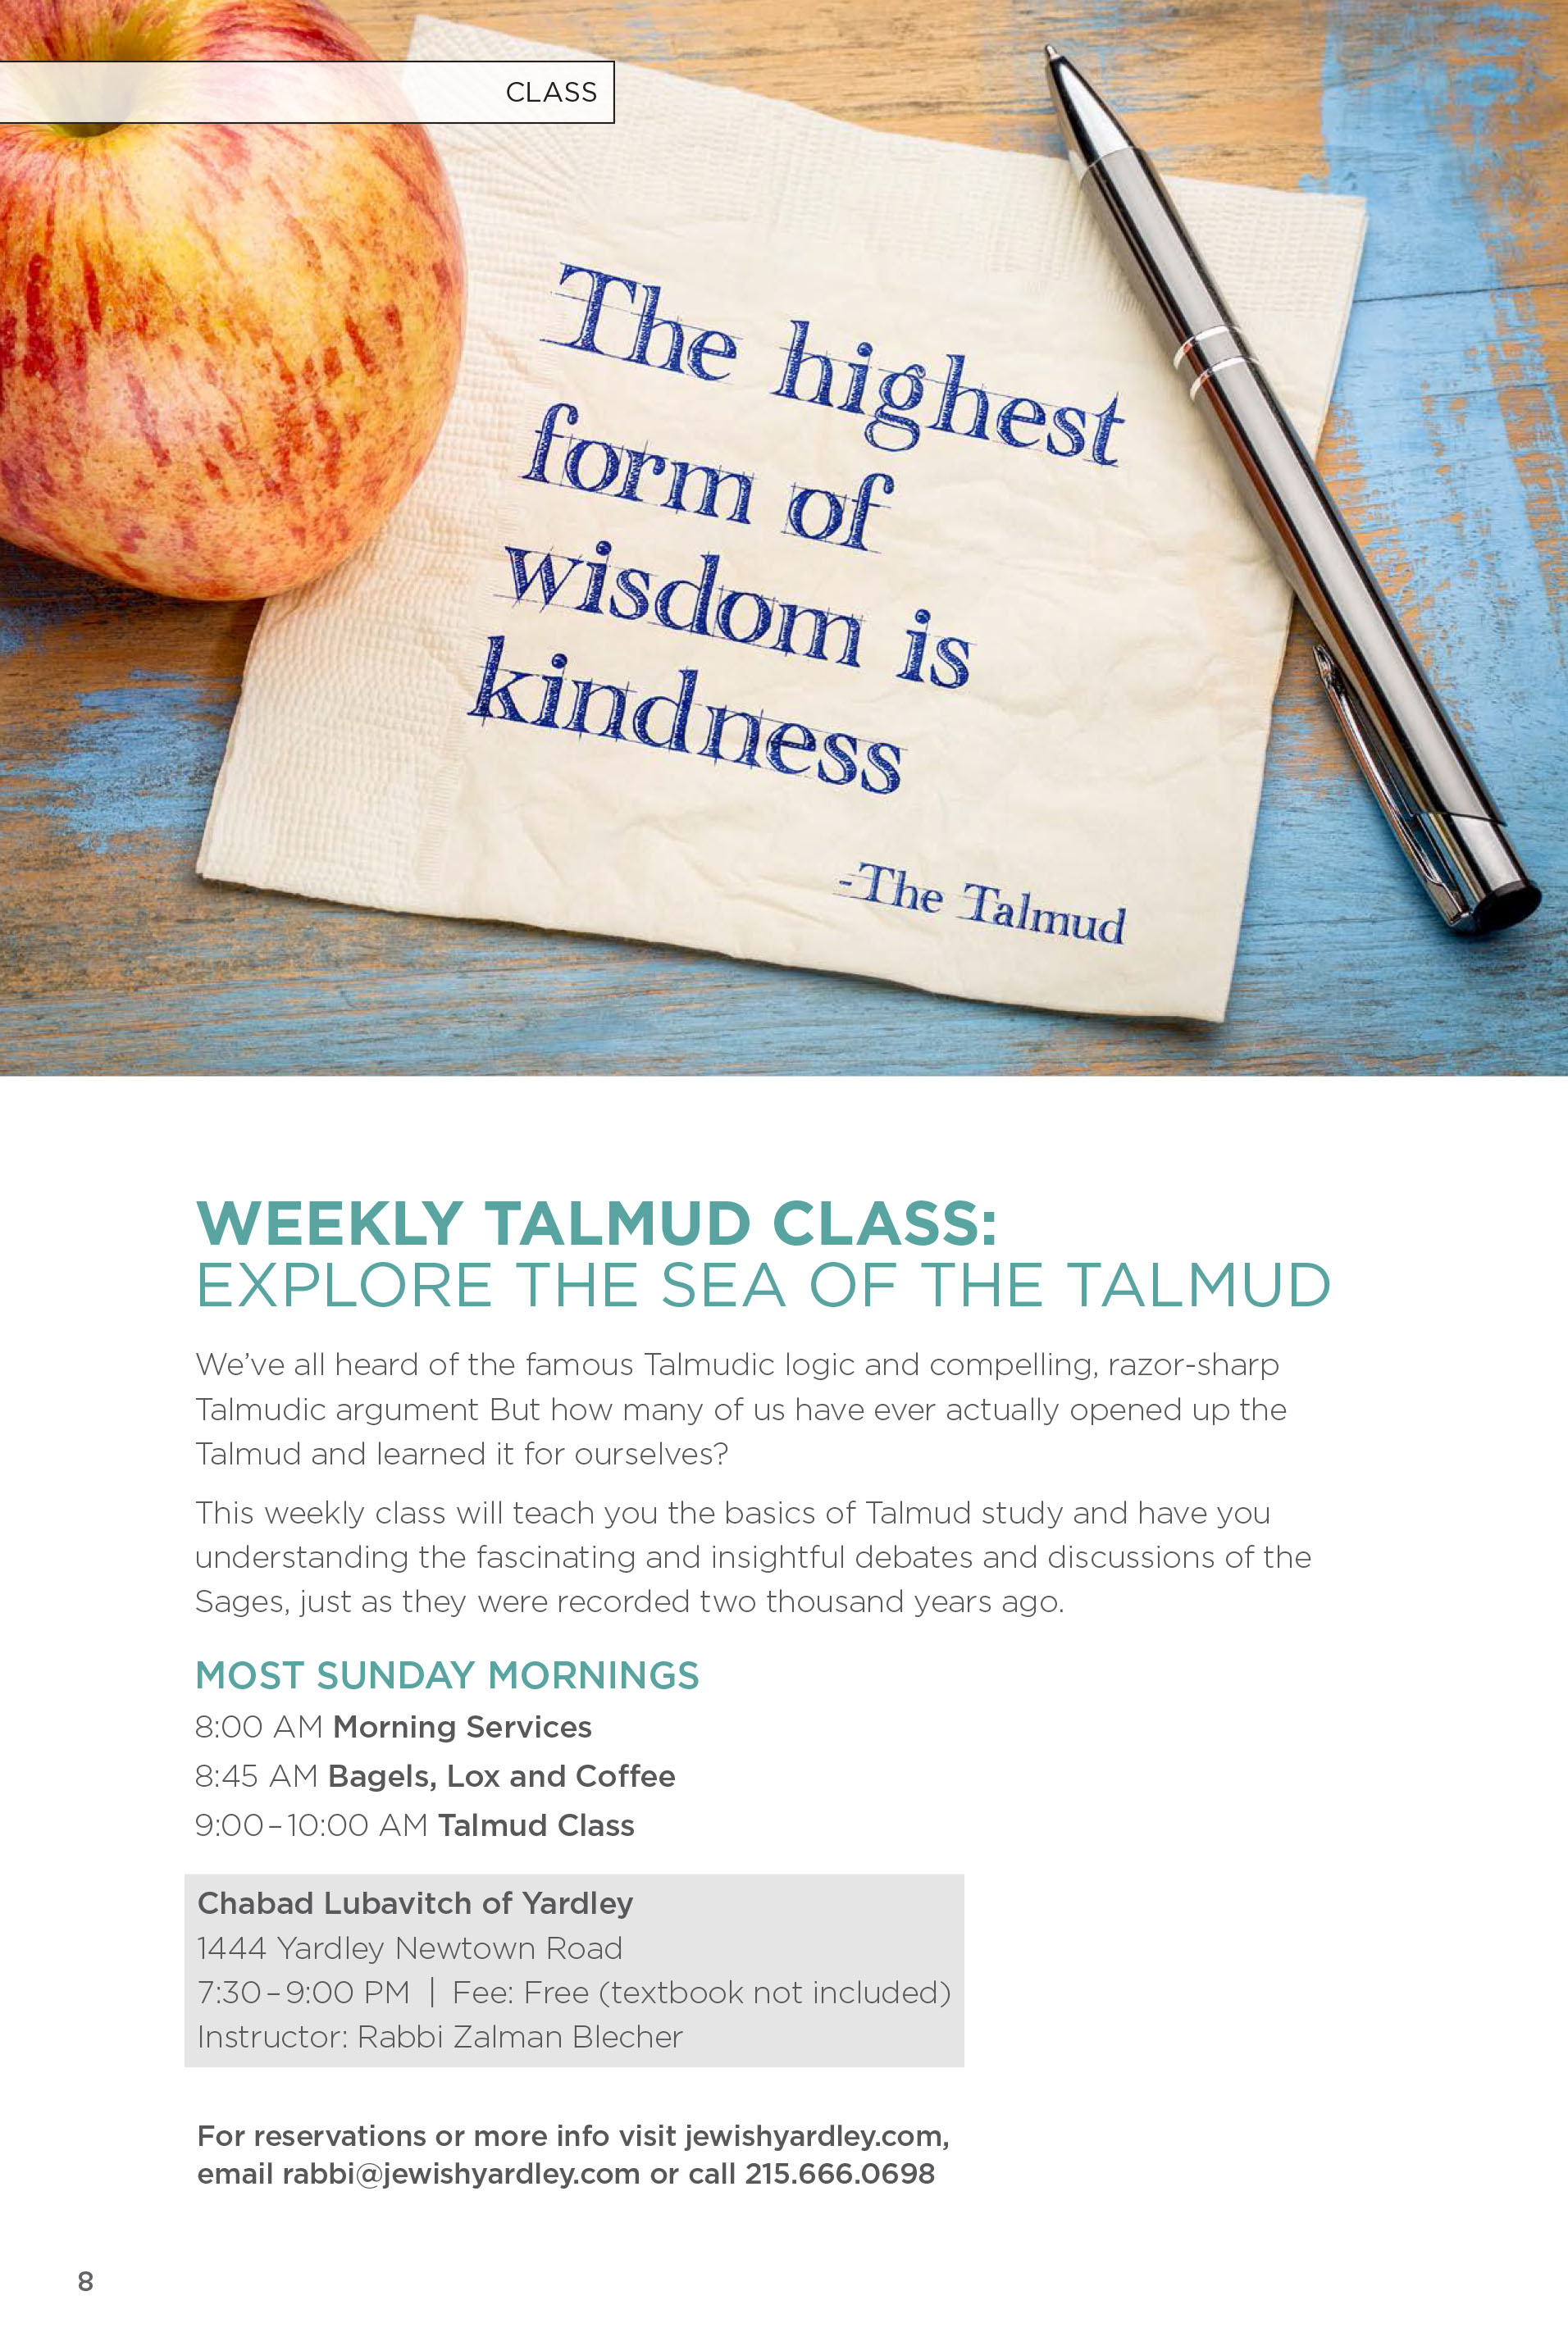 Weekly Talmud Class